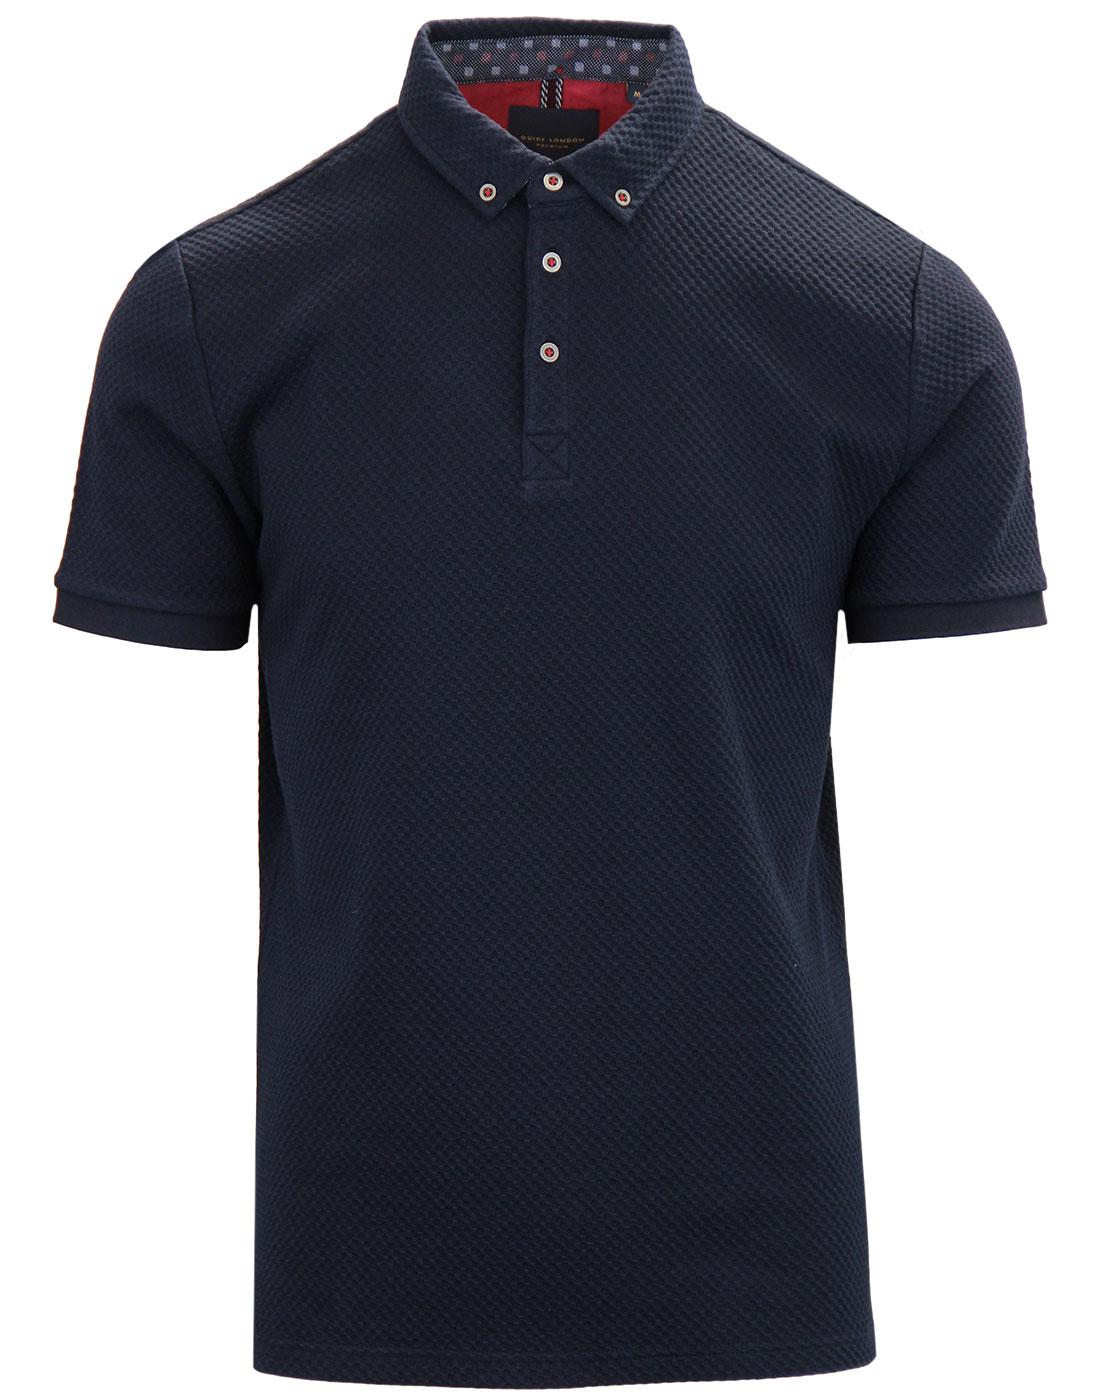 GUIDE LONDON Mod Honeycomb Waffle Polo Shirt NAVY